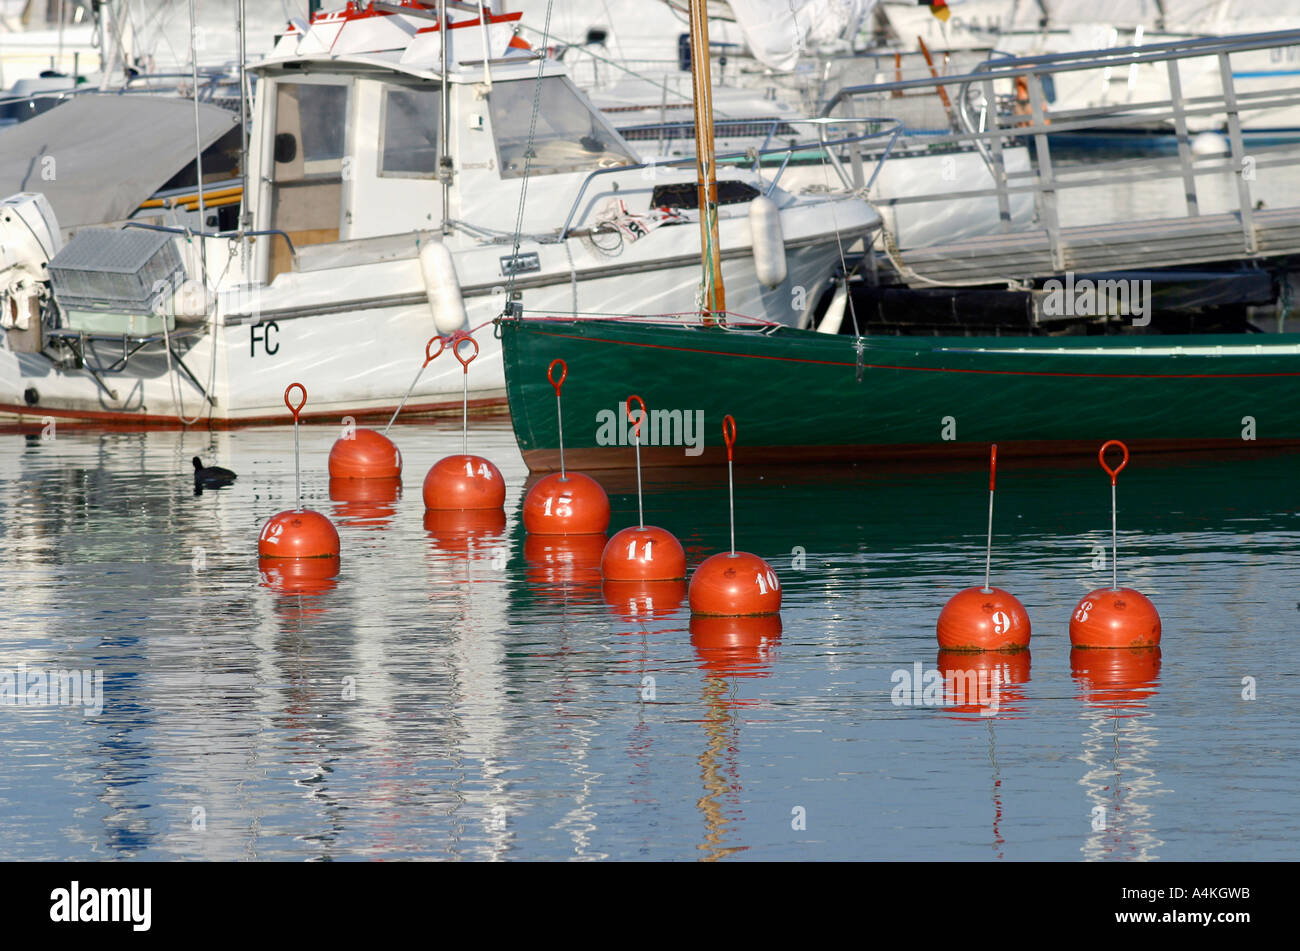 Moored boats and buoys - Stock Image